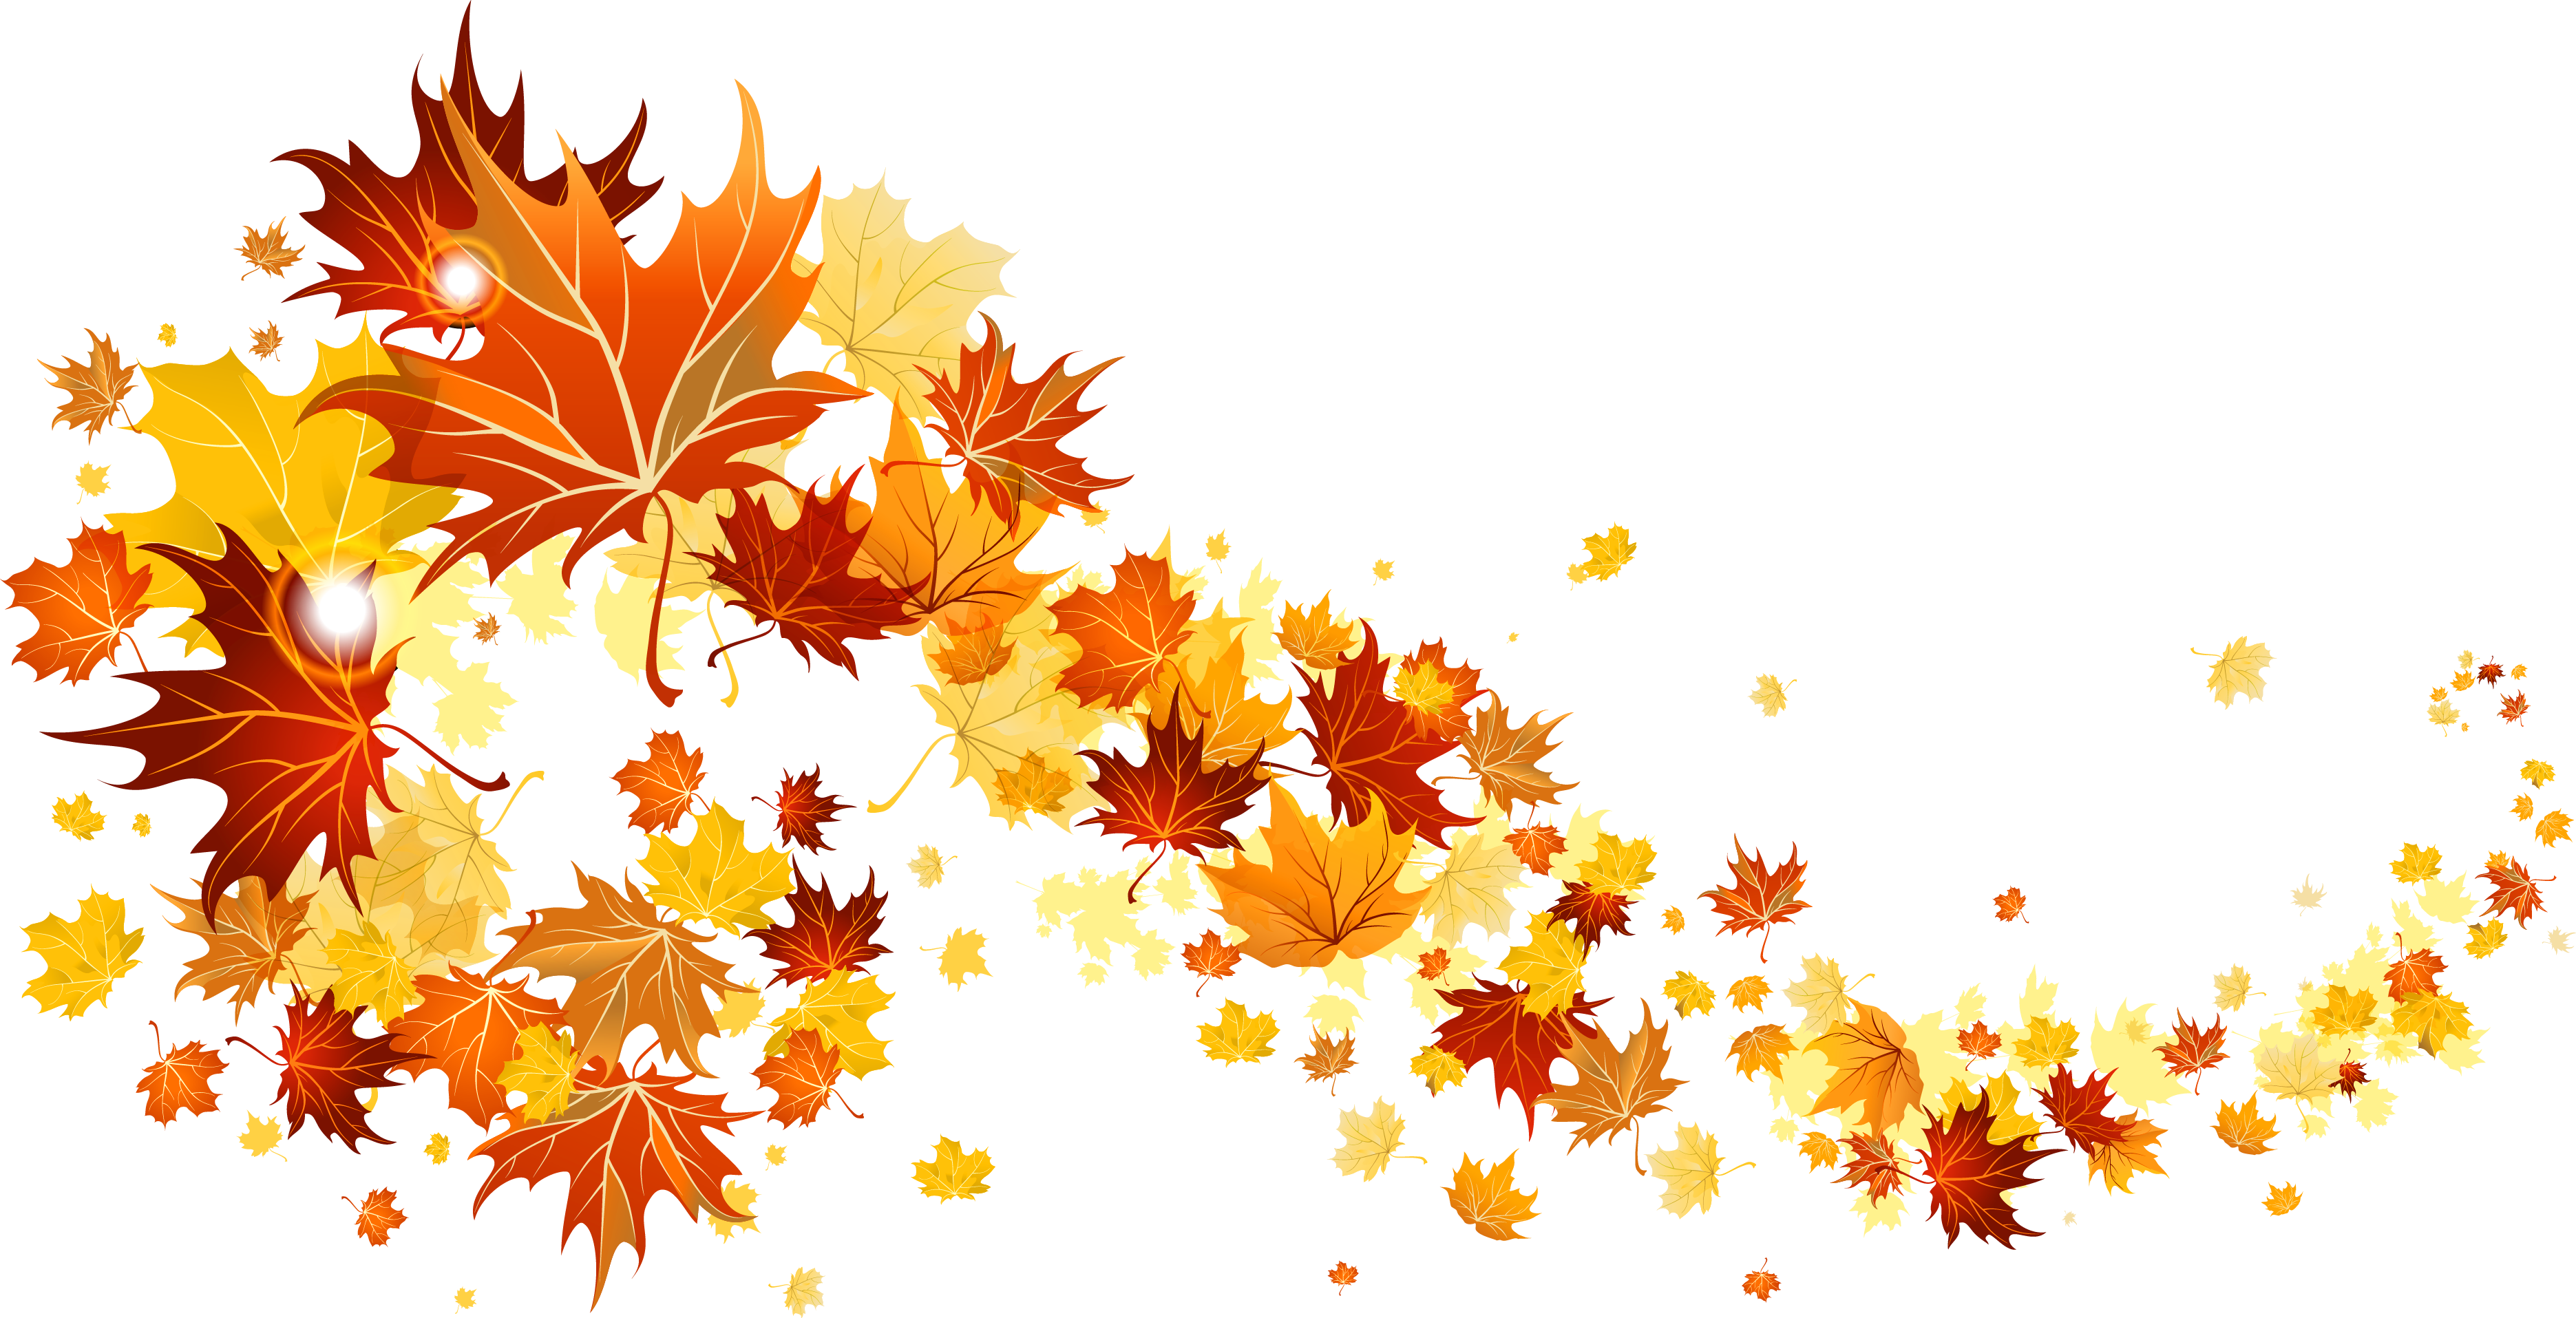 Tree with falling leaves clipart png royalty free library Fall Leaves Transparent Picture | Gallery Yopriceville - High ... png royalty free library